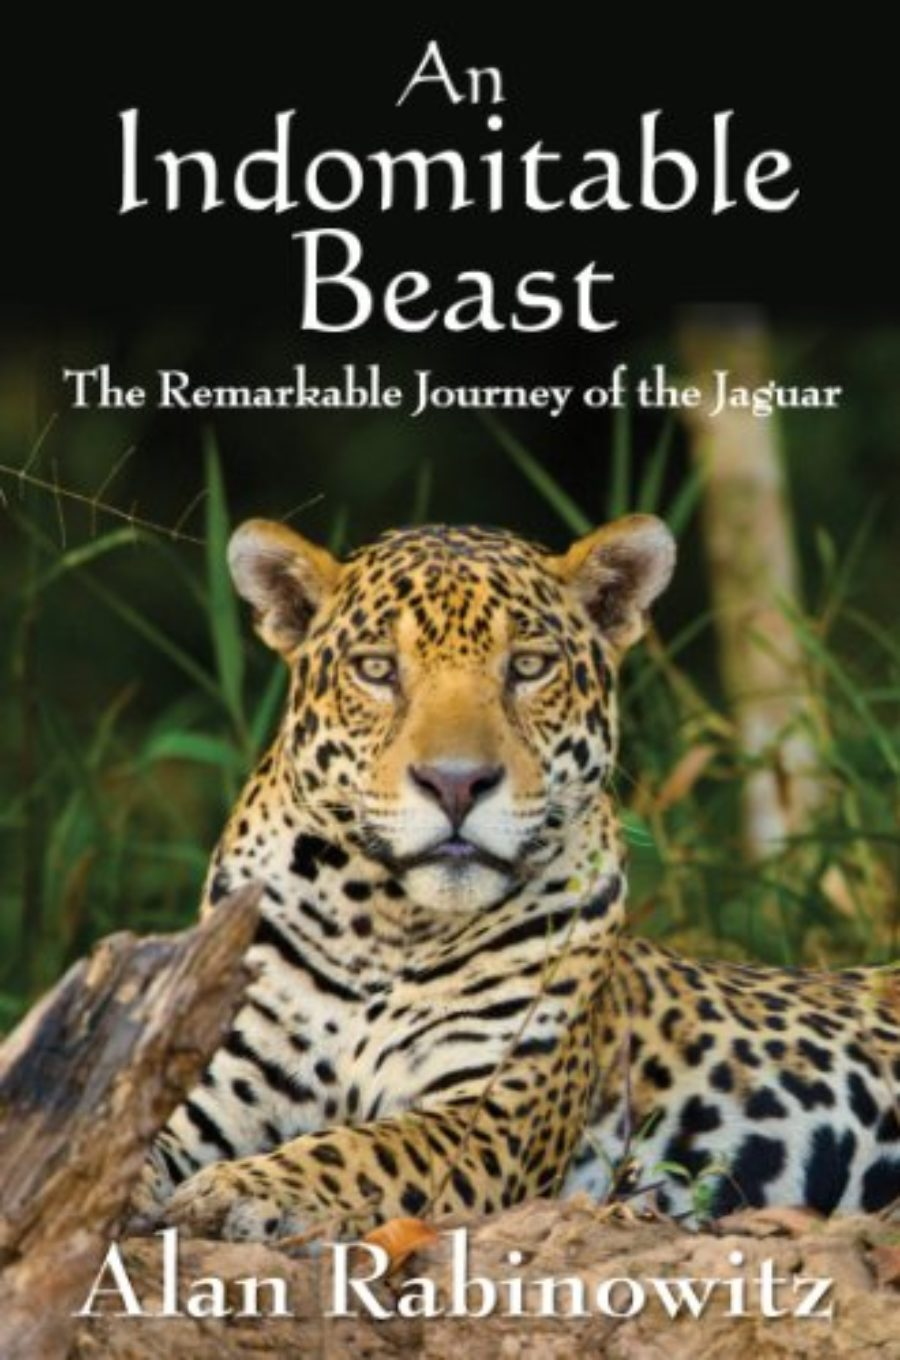 Cover of An Indomitable Beast: The Remarkable Journey of the Jaguar